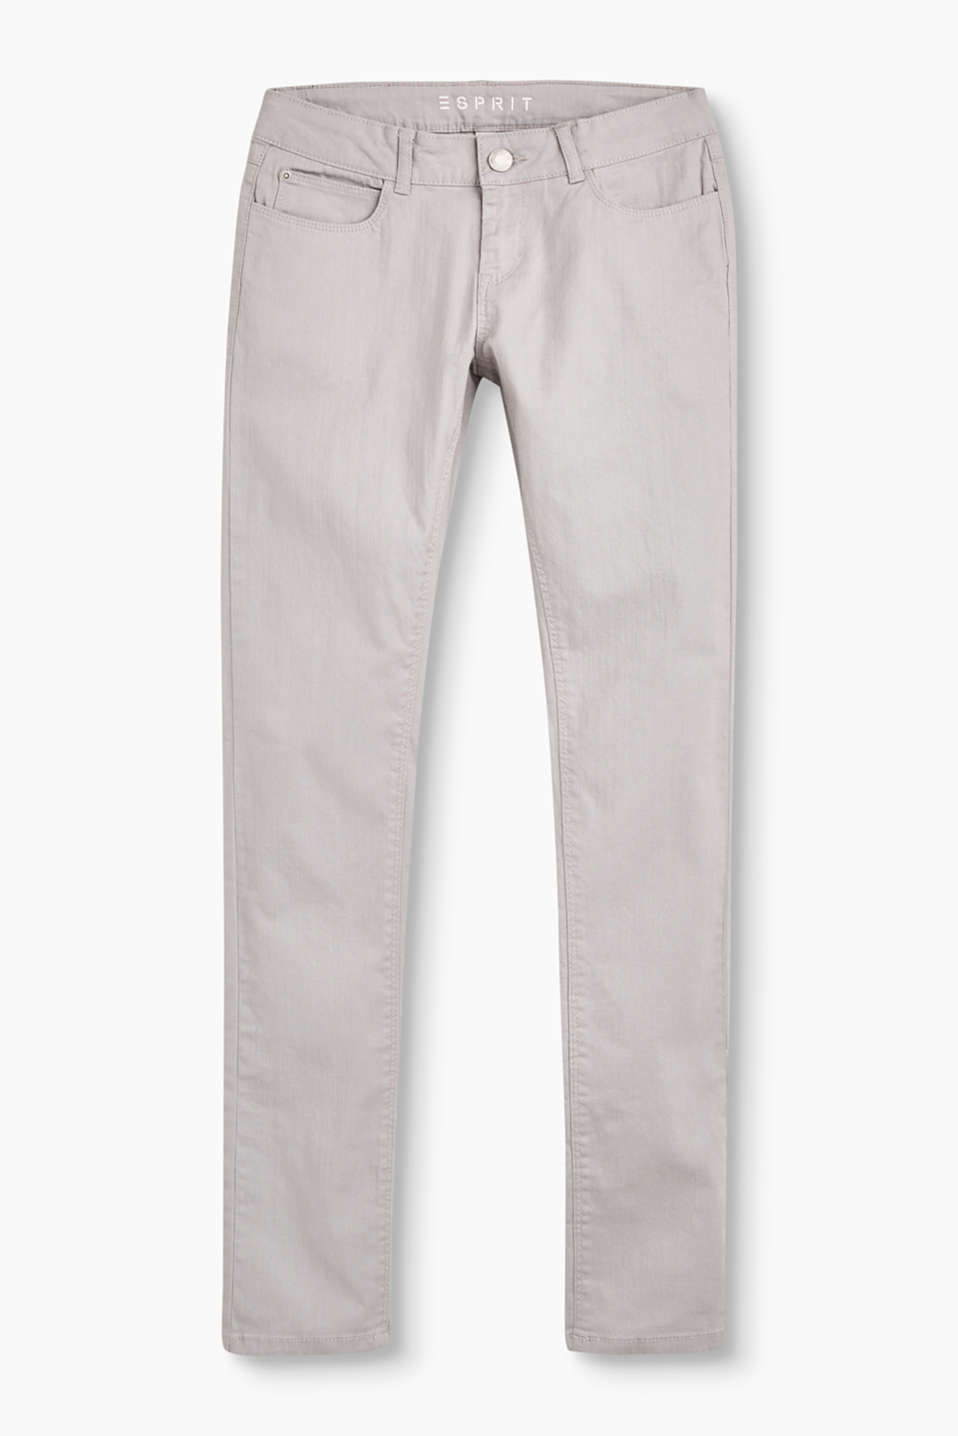 Esprit - Coloured stretchjeans, verstelbare band